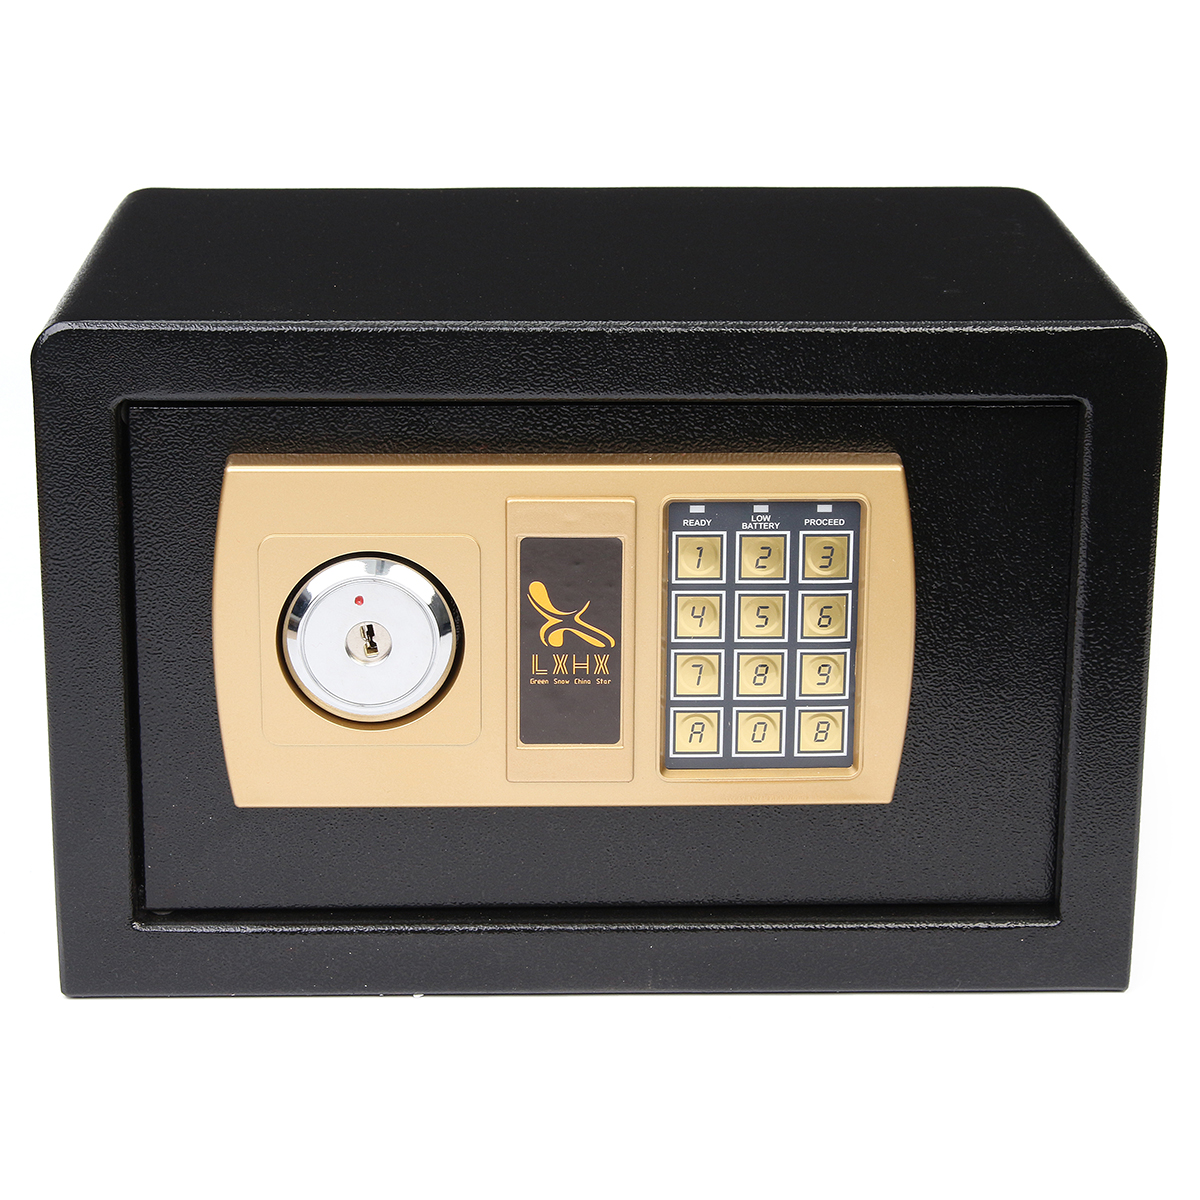 Digital Depository Drop Cash Safe Box Jewelry Home Hotel Lock Keypad Black